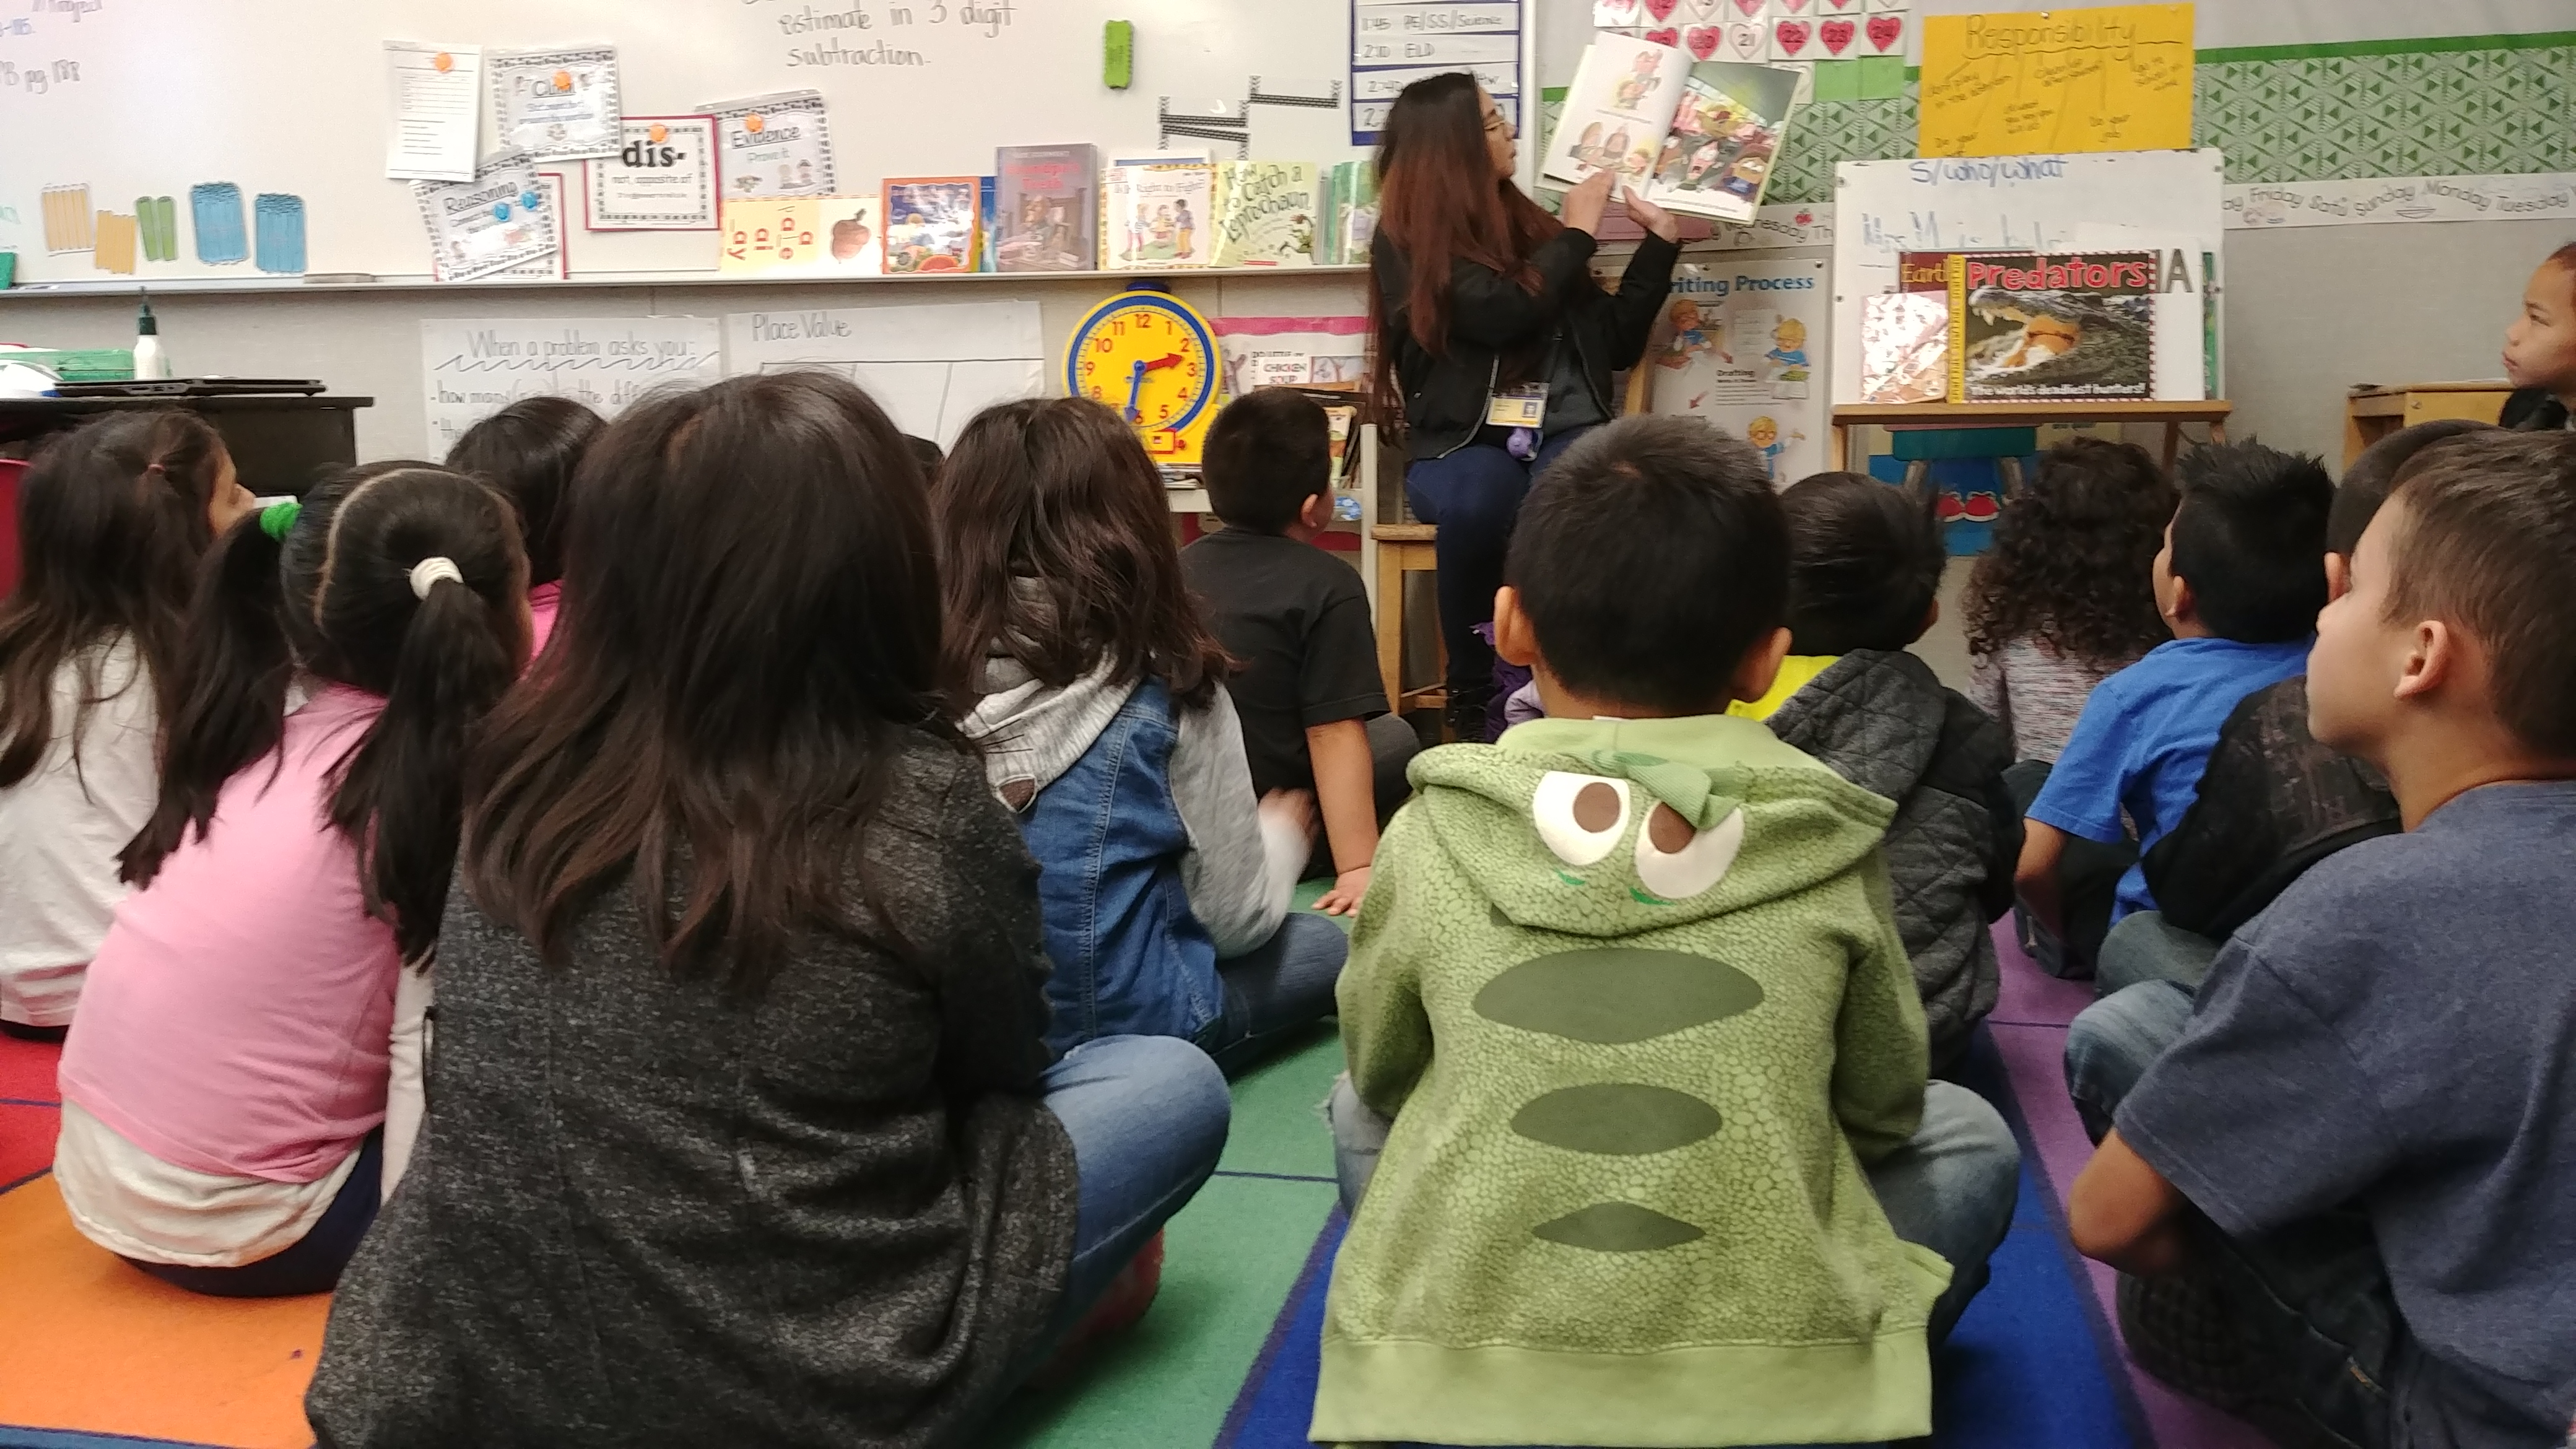 A volunteer reading to a classroom of children